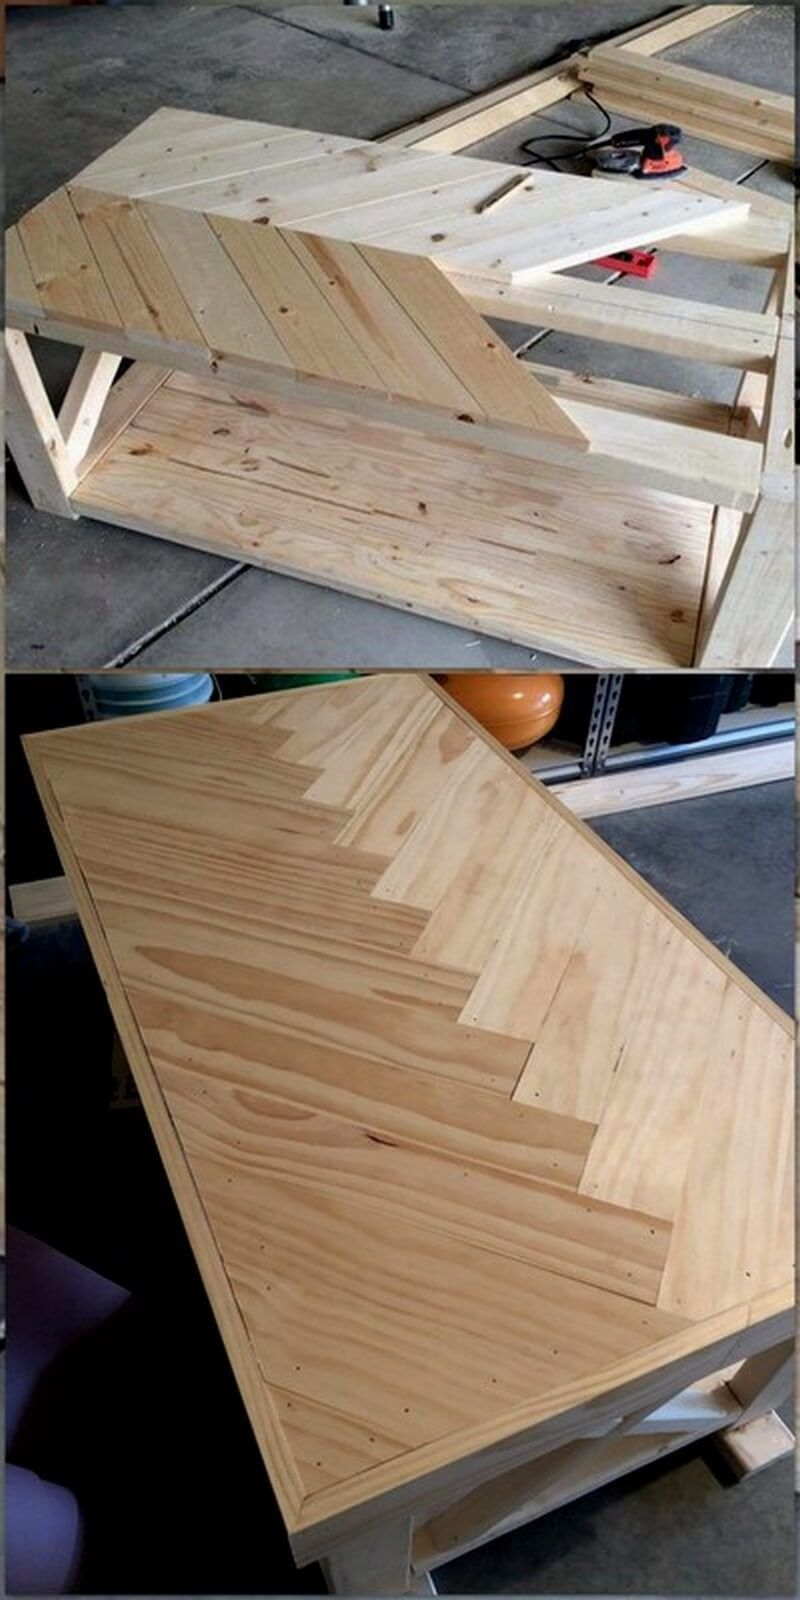 How To Make Furniture From The Wooden Pallet Diy Motivations Diy Furniture Motivations Palle In 2020 Woodworking Projects Diy Wood Table Design Furniture Making